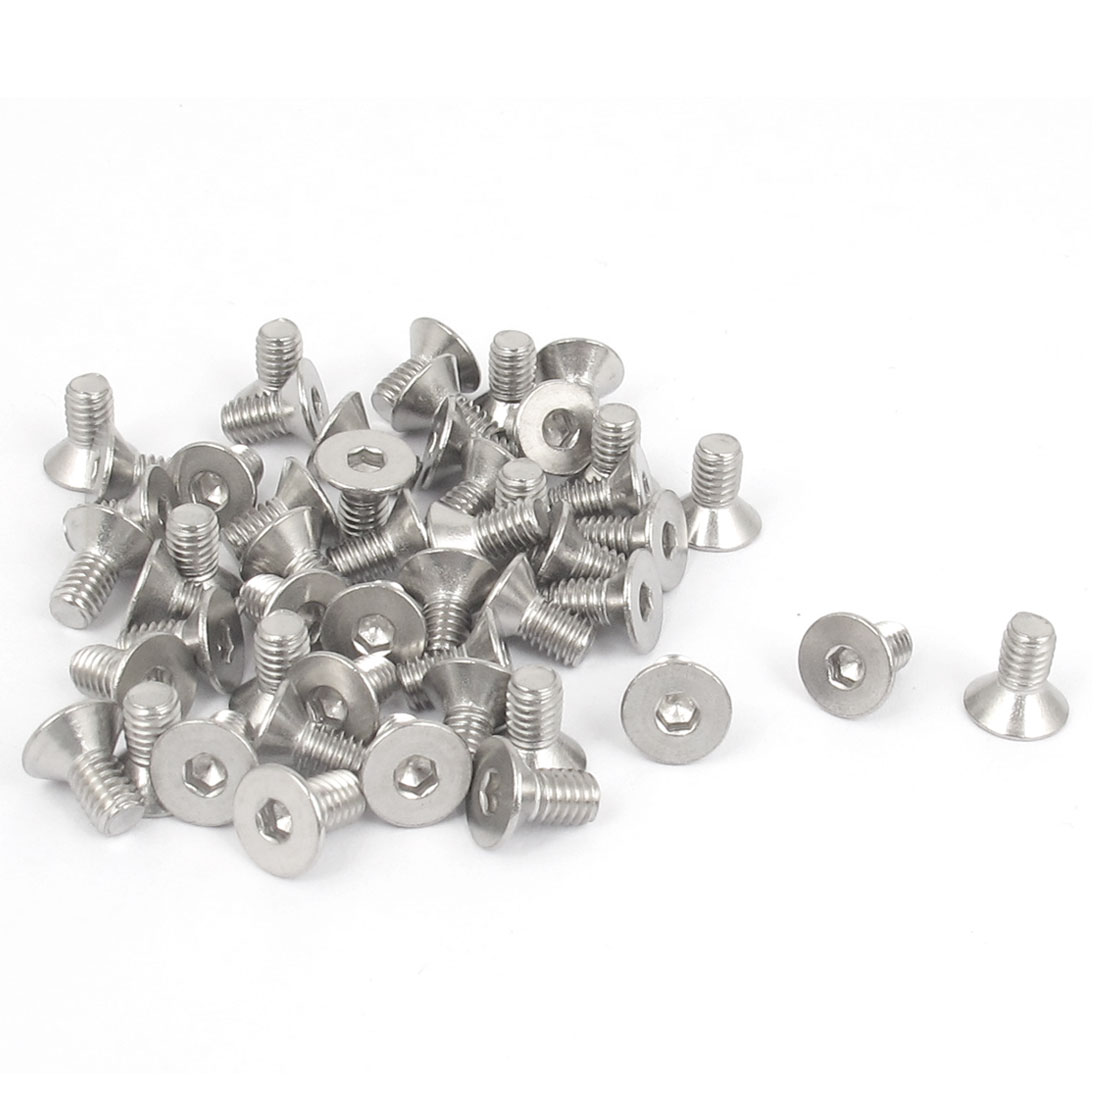 M4 x 8mm Metric 304 Stainless Steel Hex Socket Countersunk Flat Head Screw Bolts 50PCS